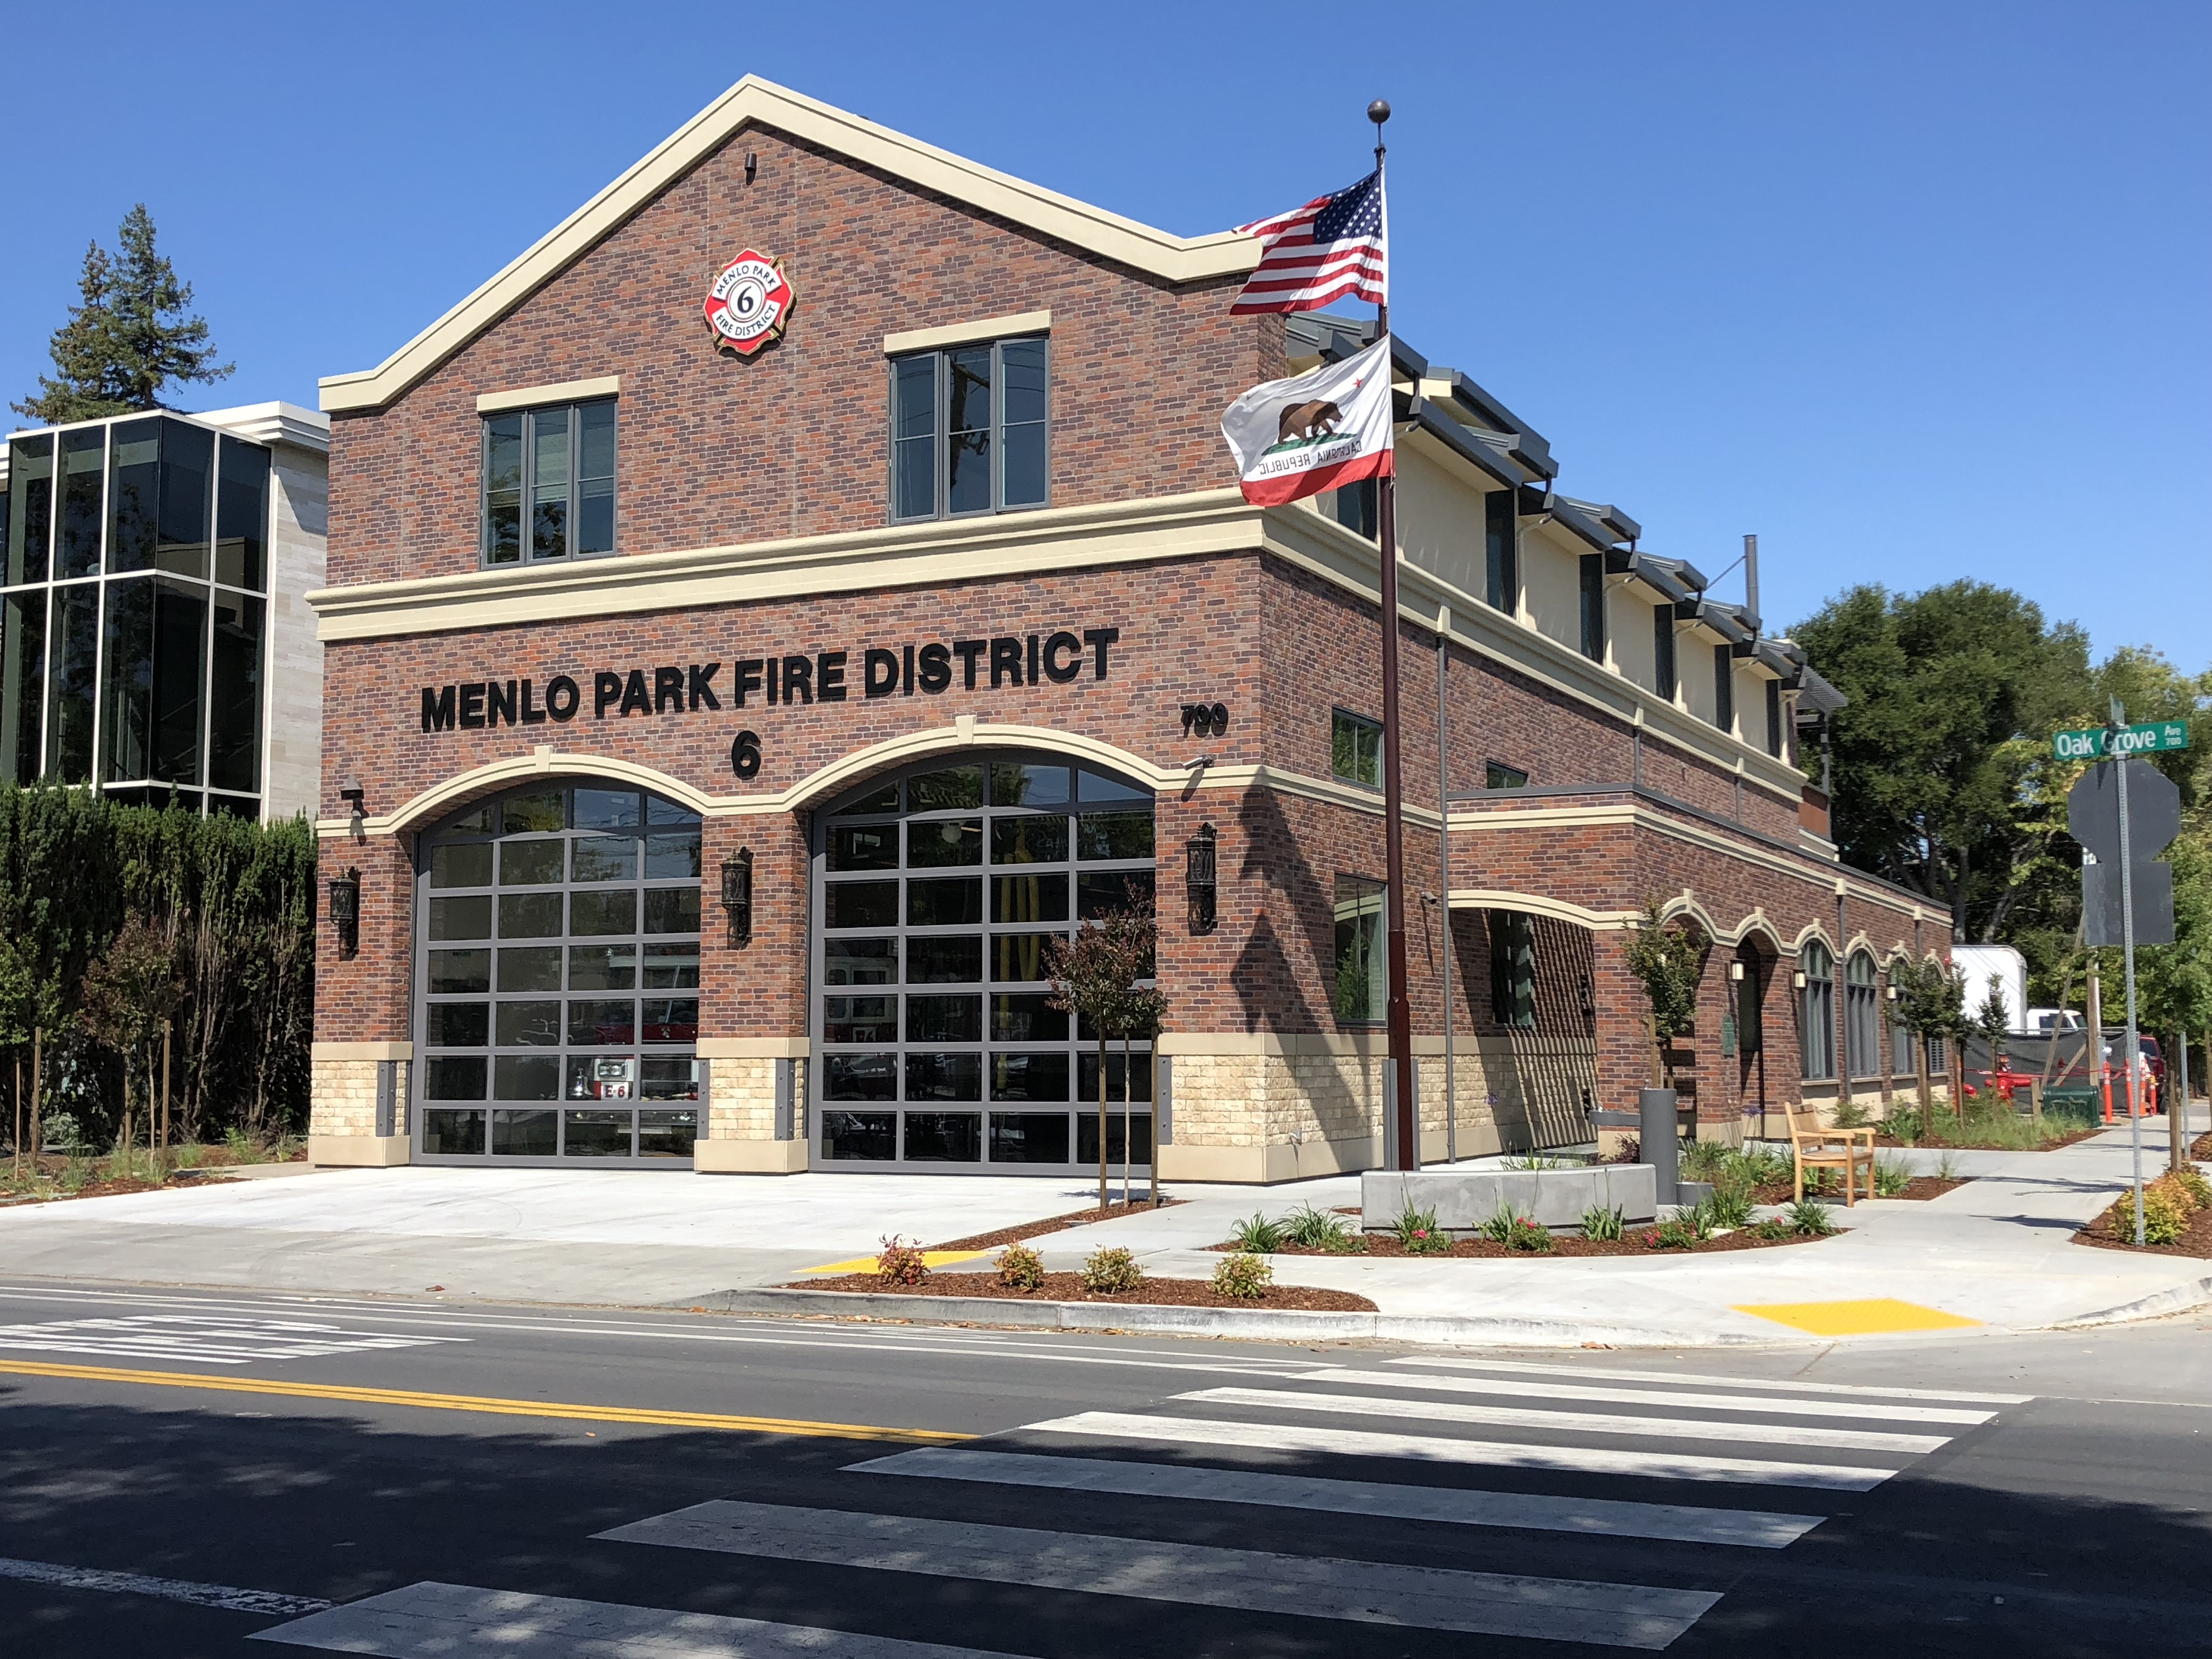 Menlo Park Fire District - Viewing Facility: Station 6